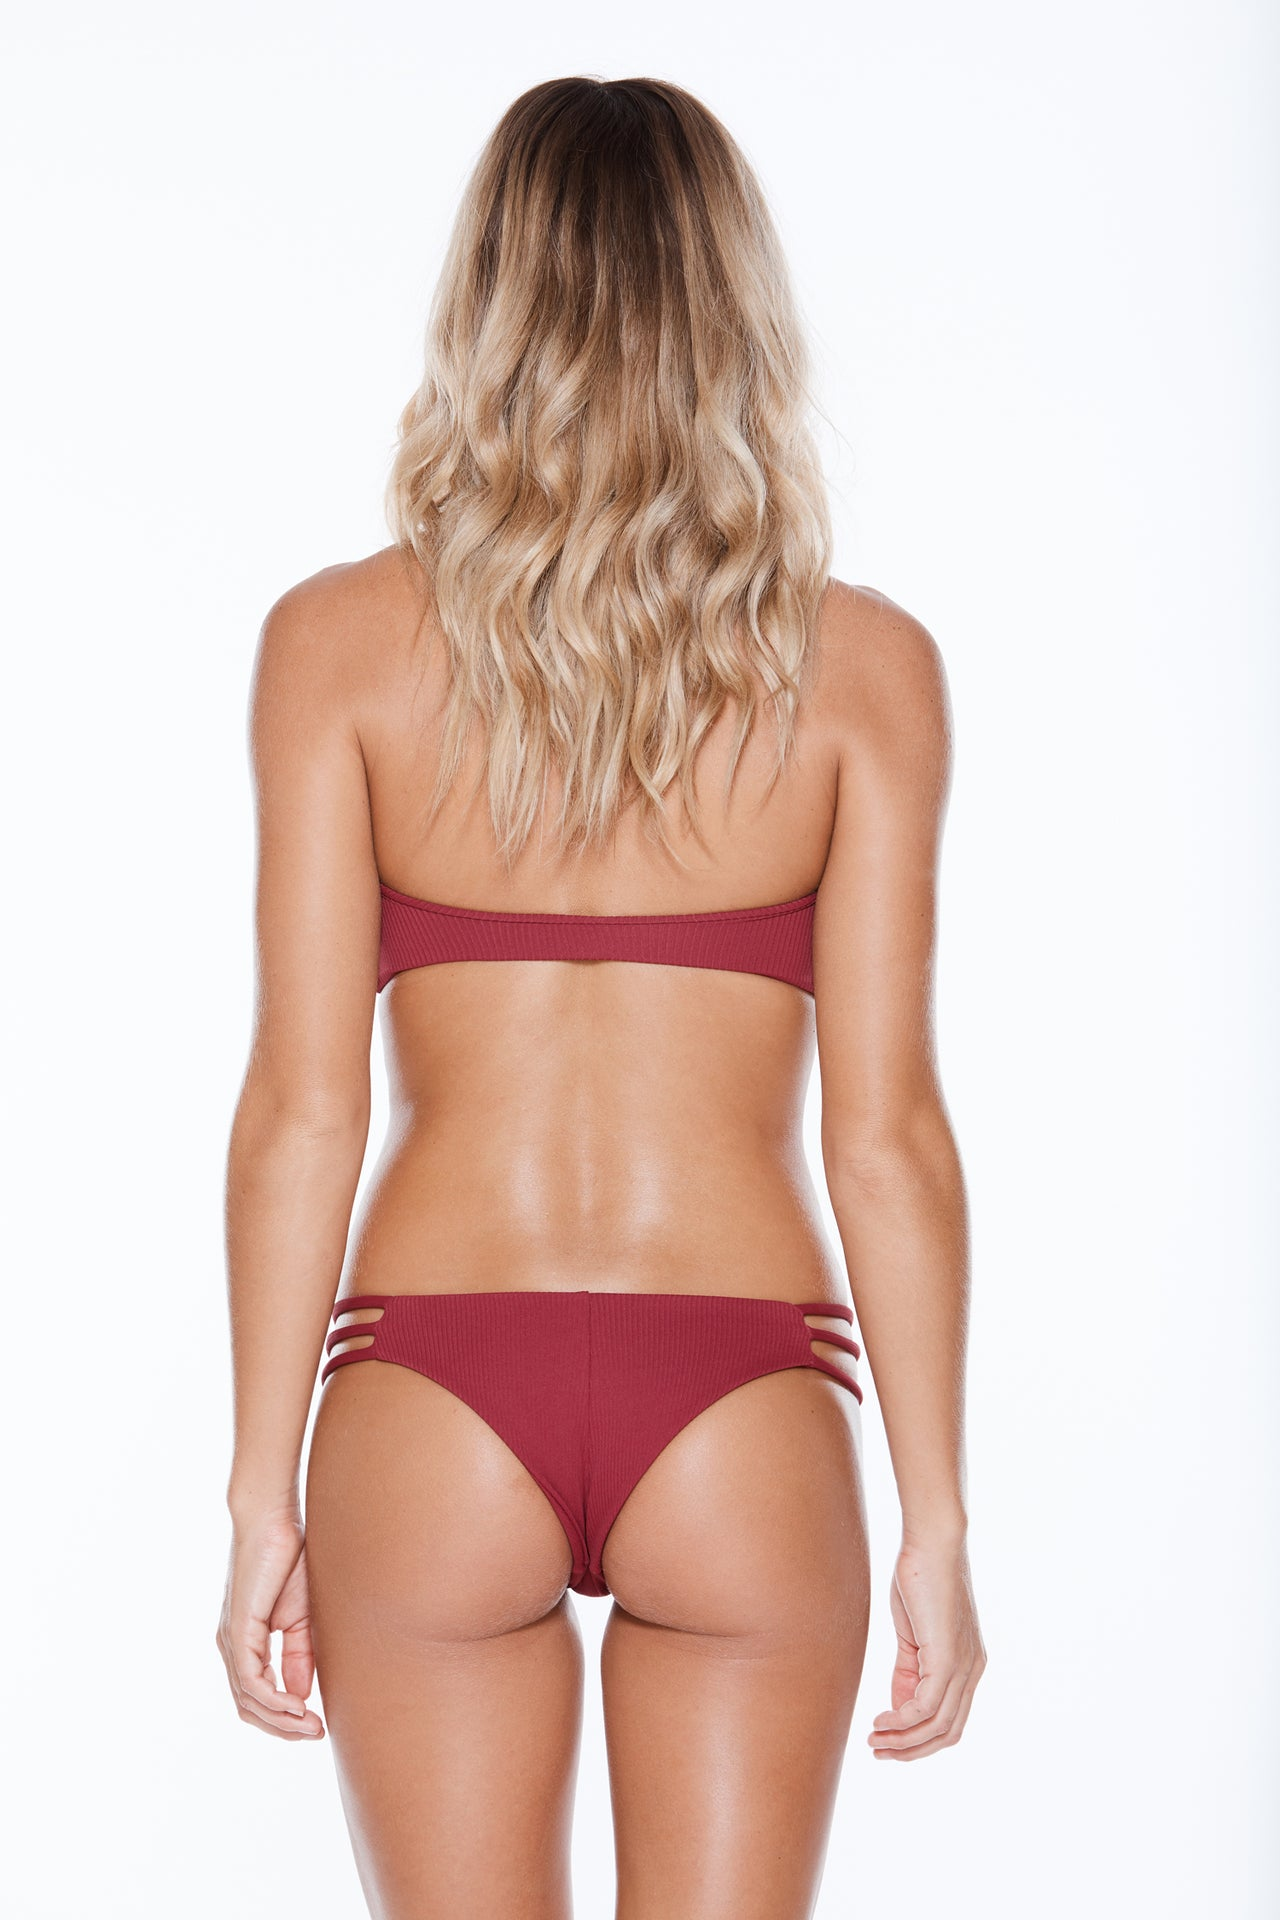 Luna Top - Burgundy Rib